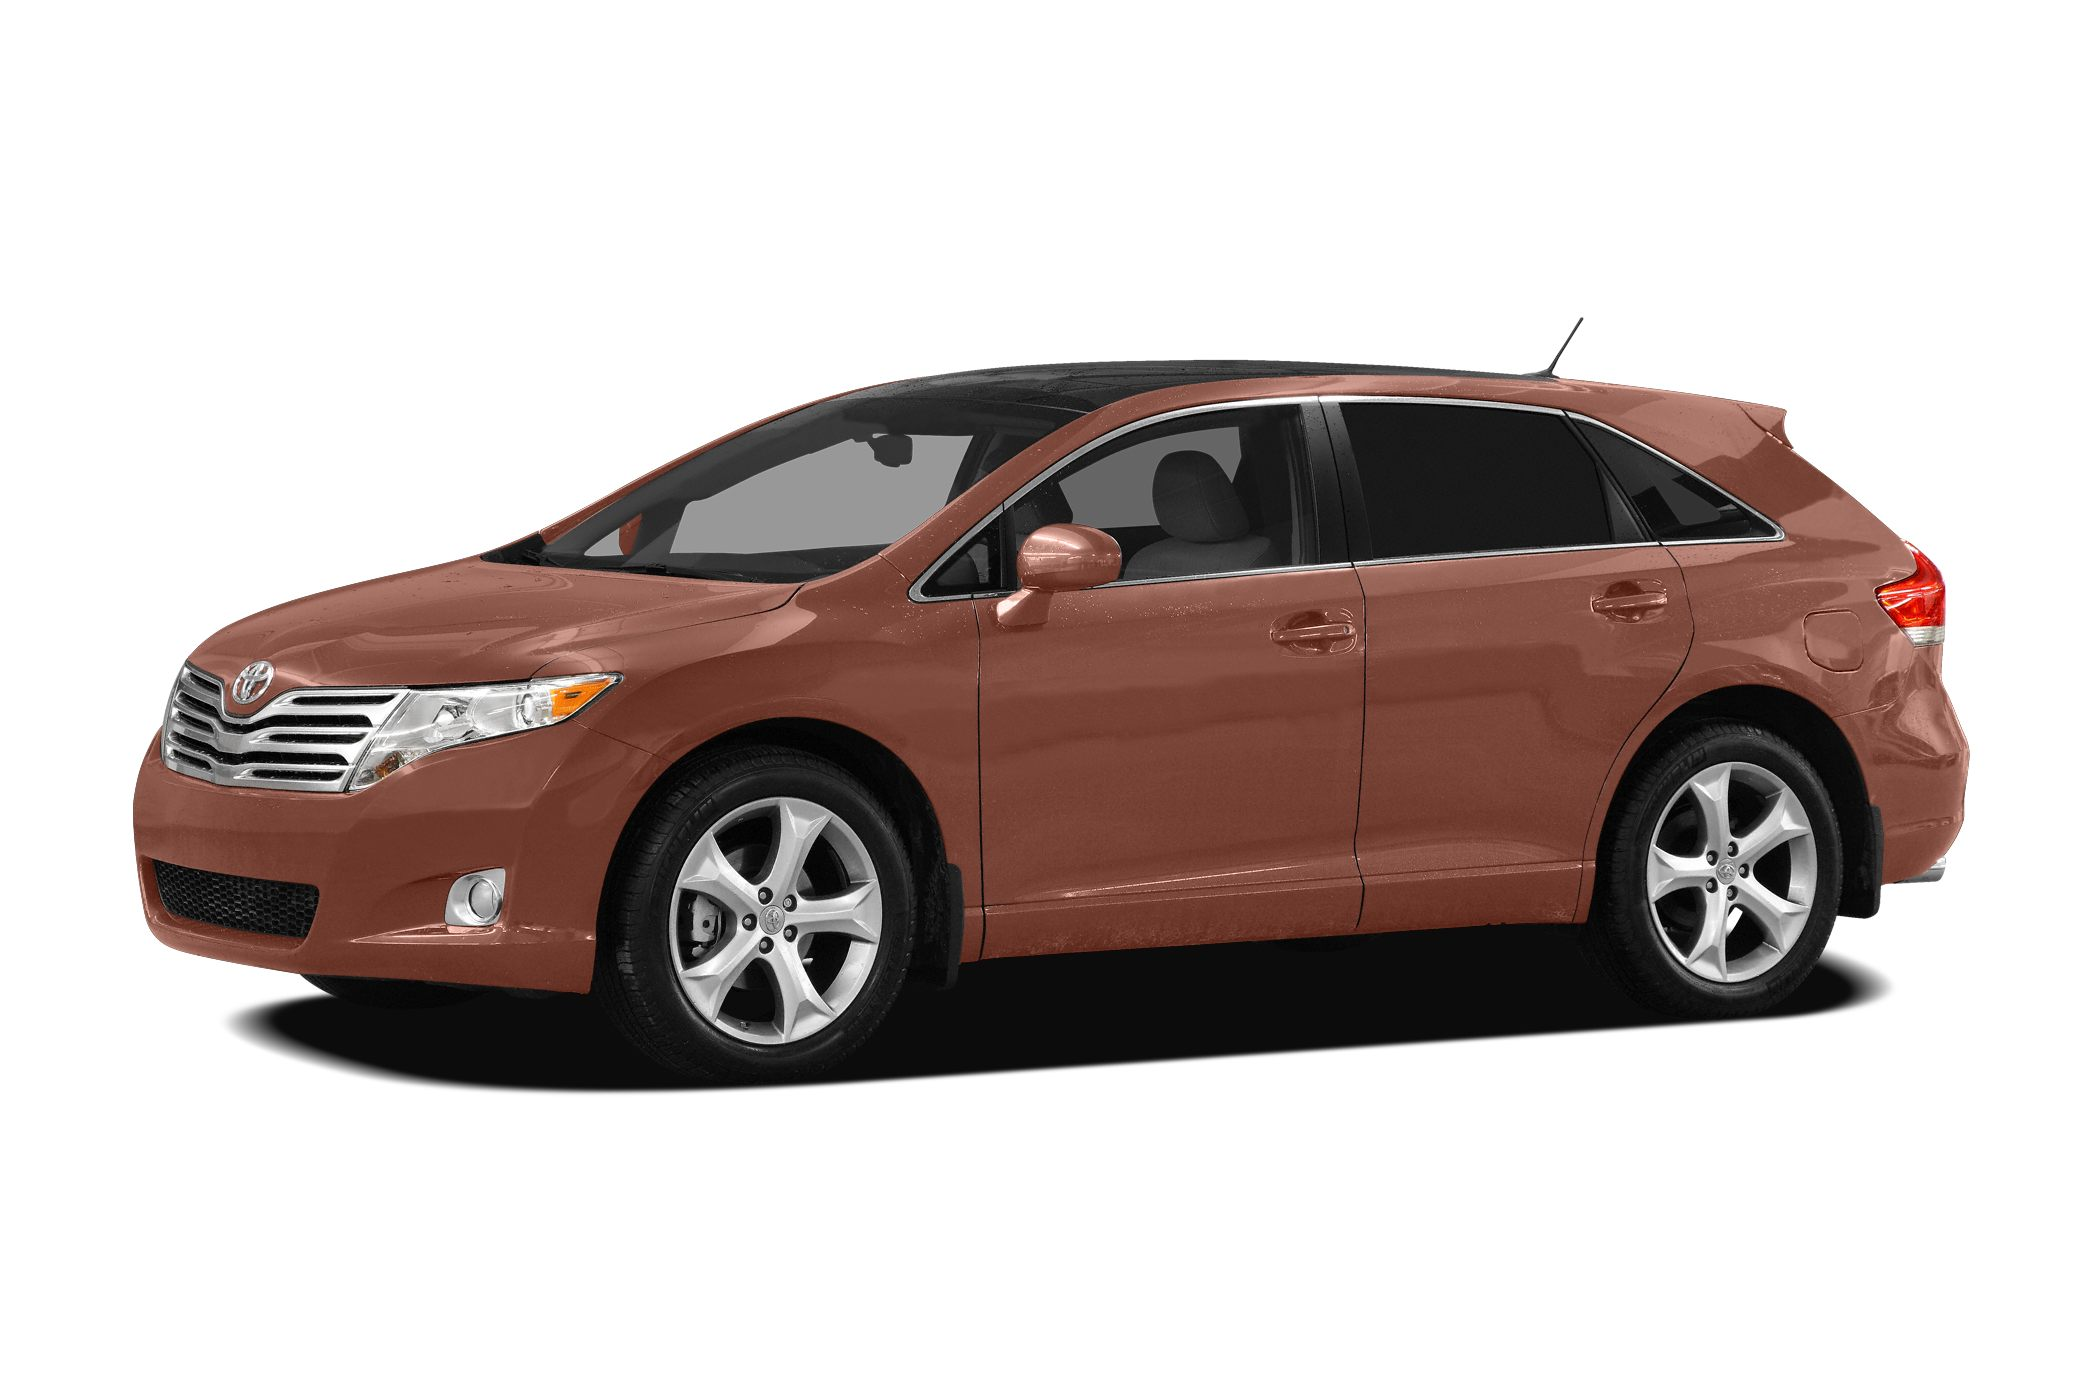 2009 Toyota Venza Base Prices are PLUS tax tag title fee 799 Pre-Delivery Service Fee and 1